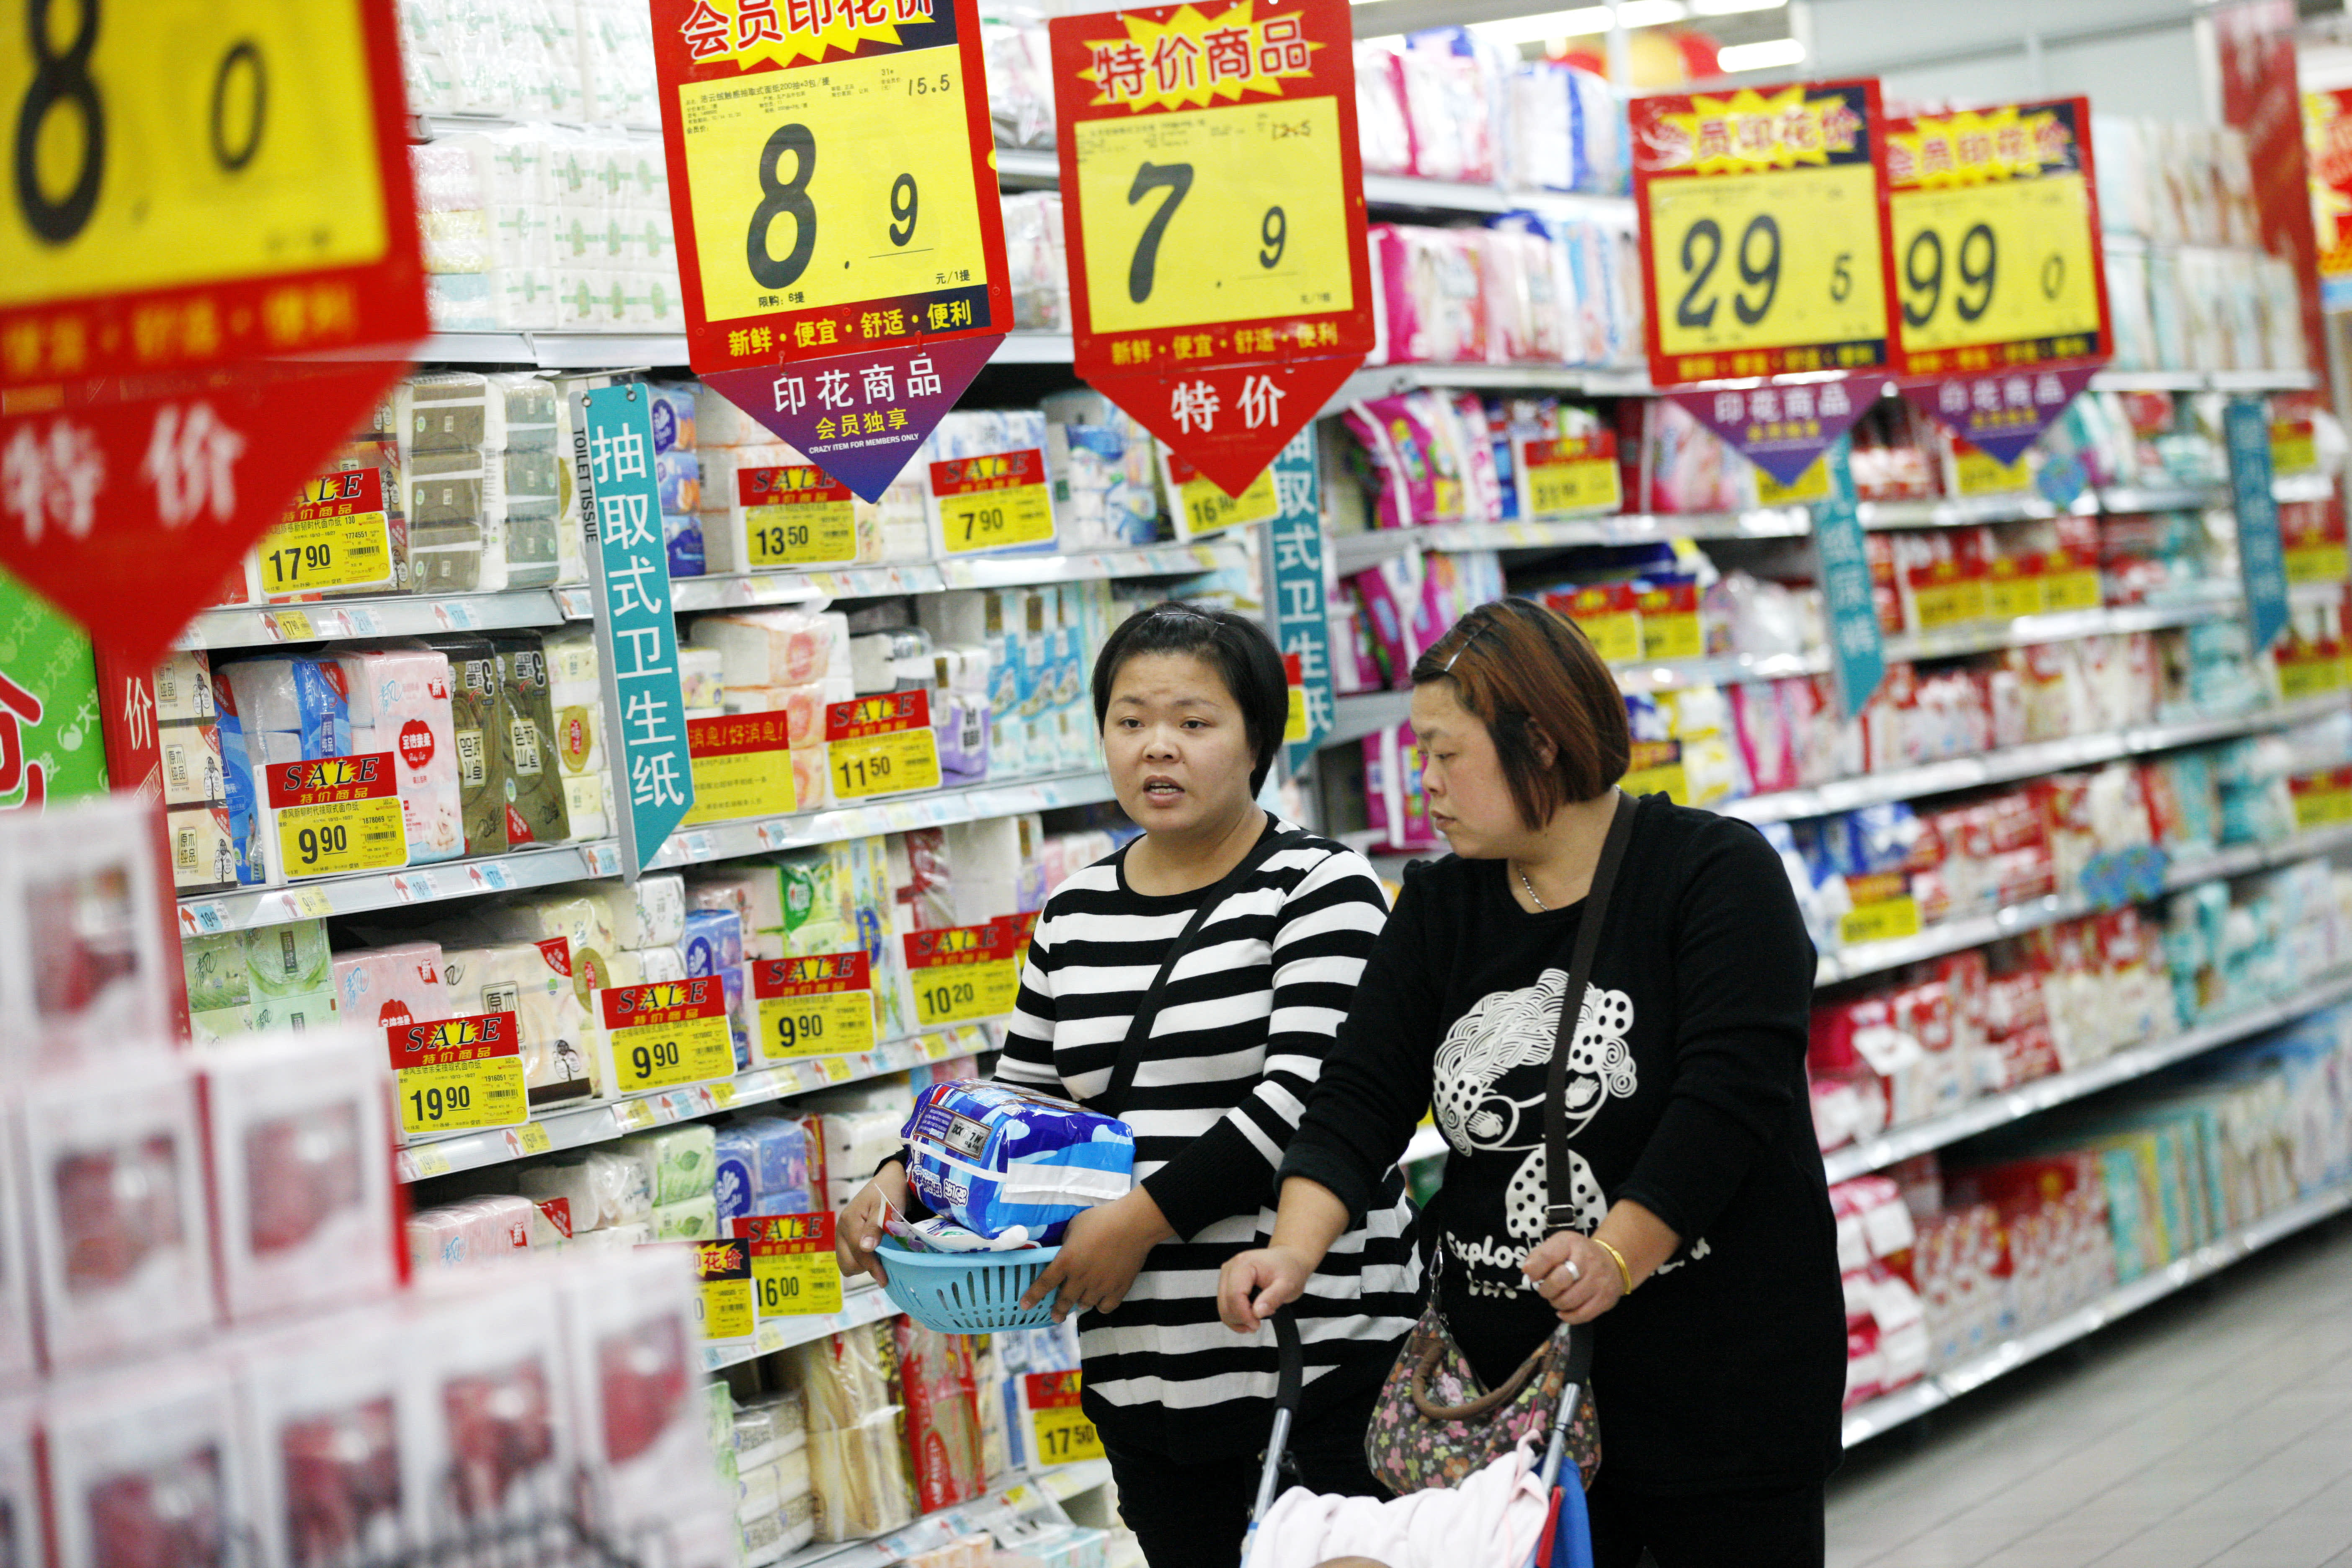 China's retail sales growth slumps to 16-year low as trade war risks rise thumbnail